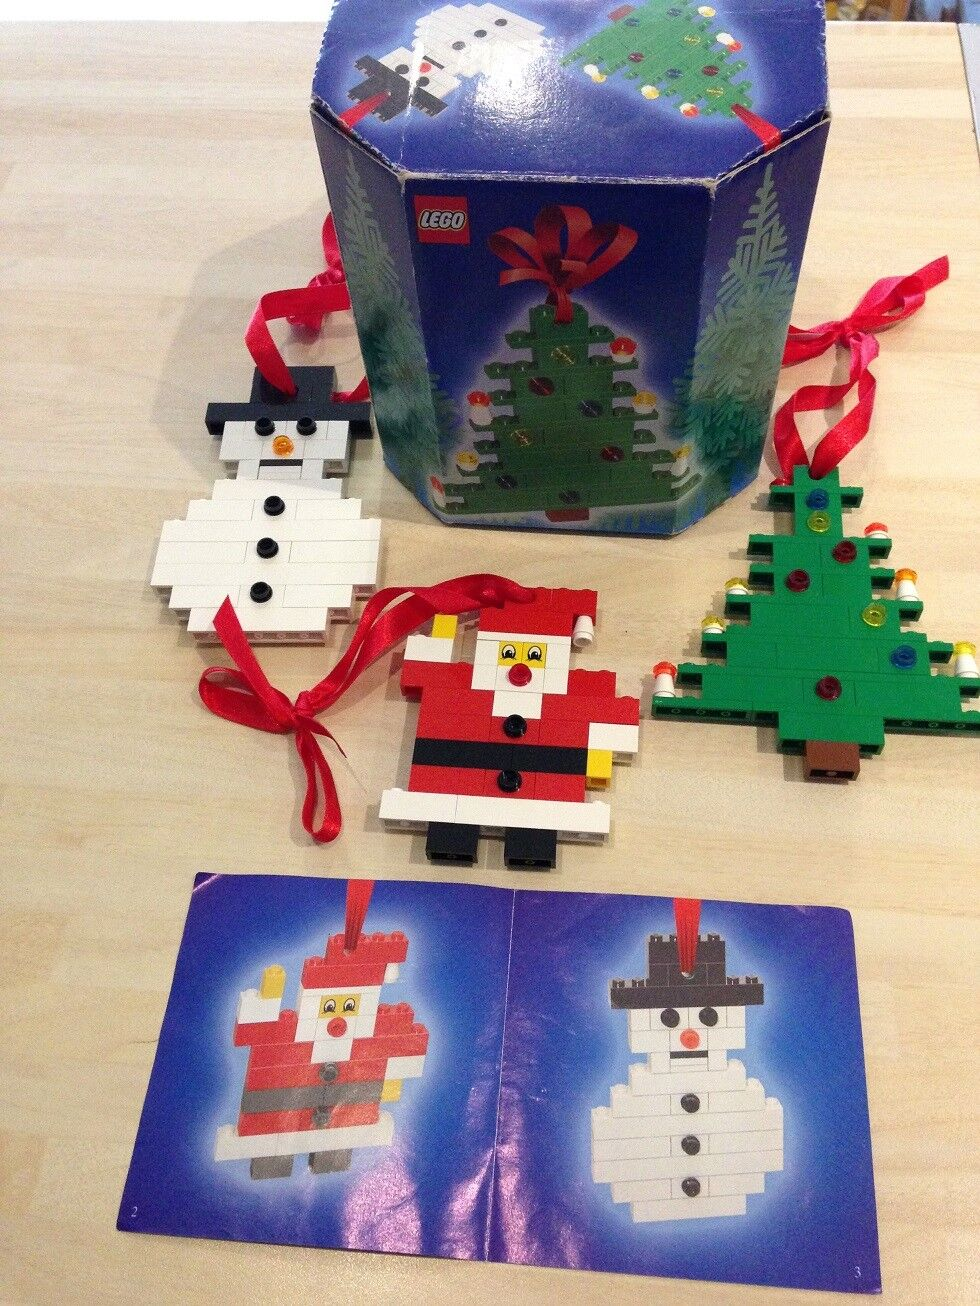 Lego Set 4759. Xmas Decoration Set from 2004. Very Good Condition. RARE SET.